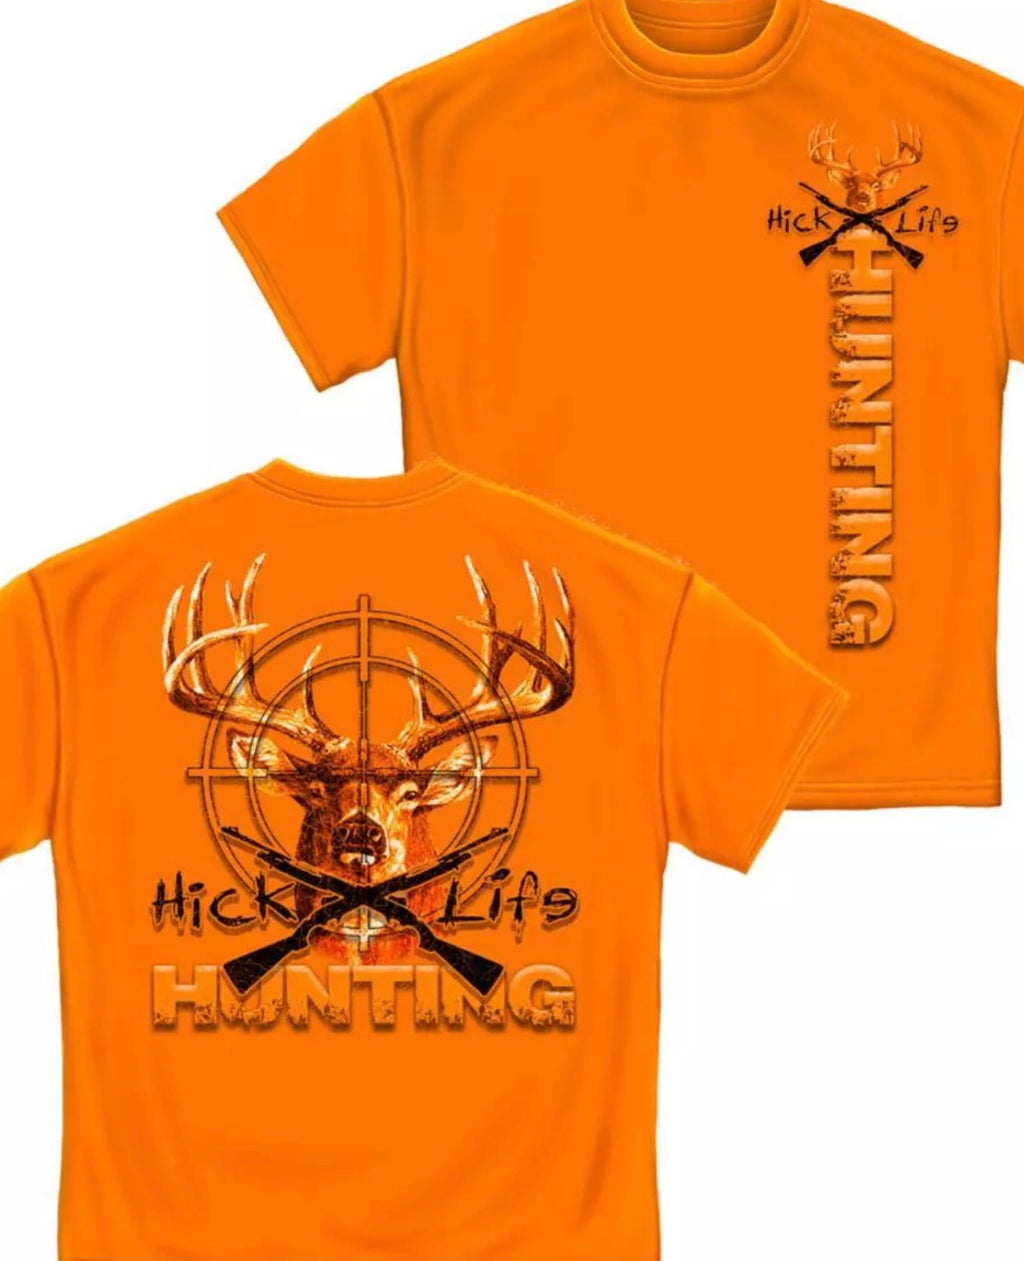 Deer Hunting Hicks Life - The Wall Kids, Inc.